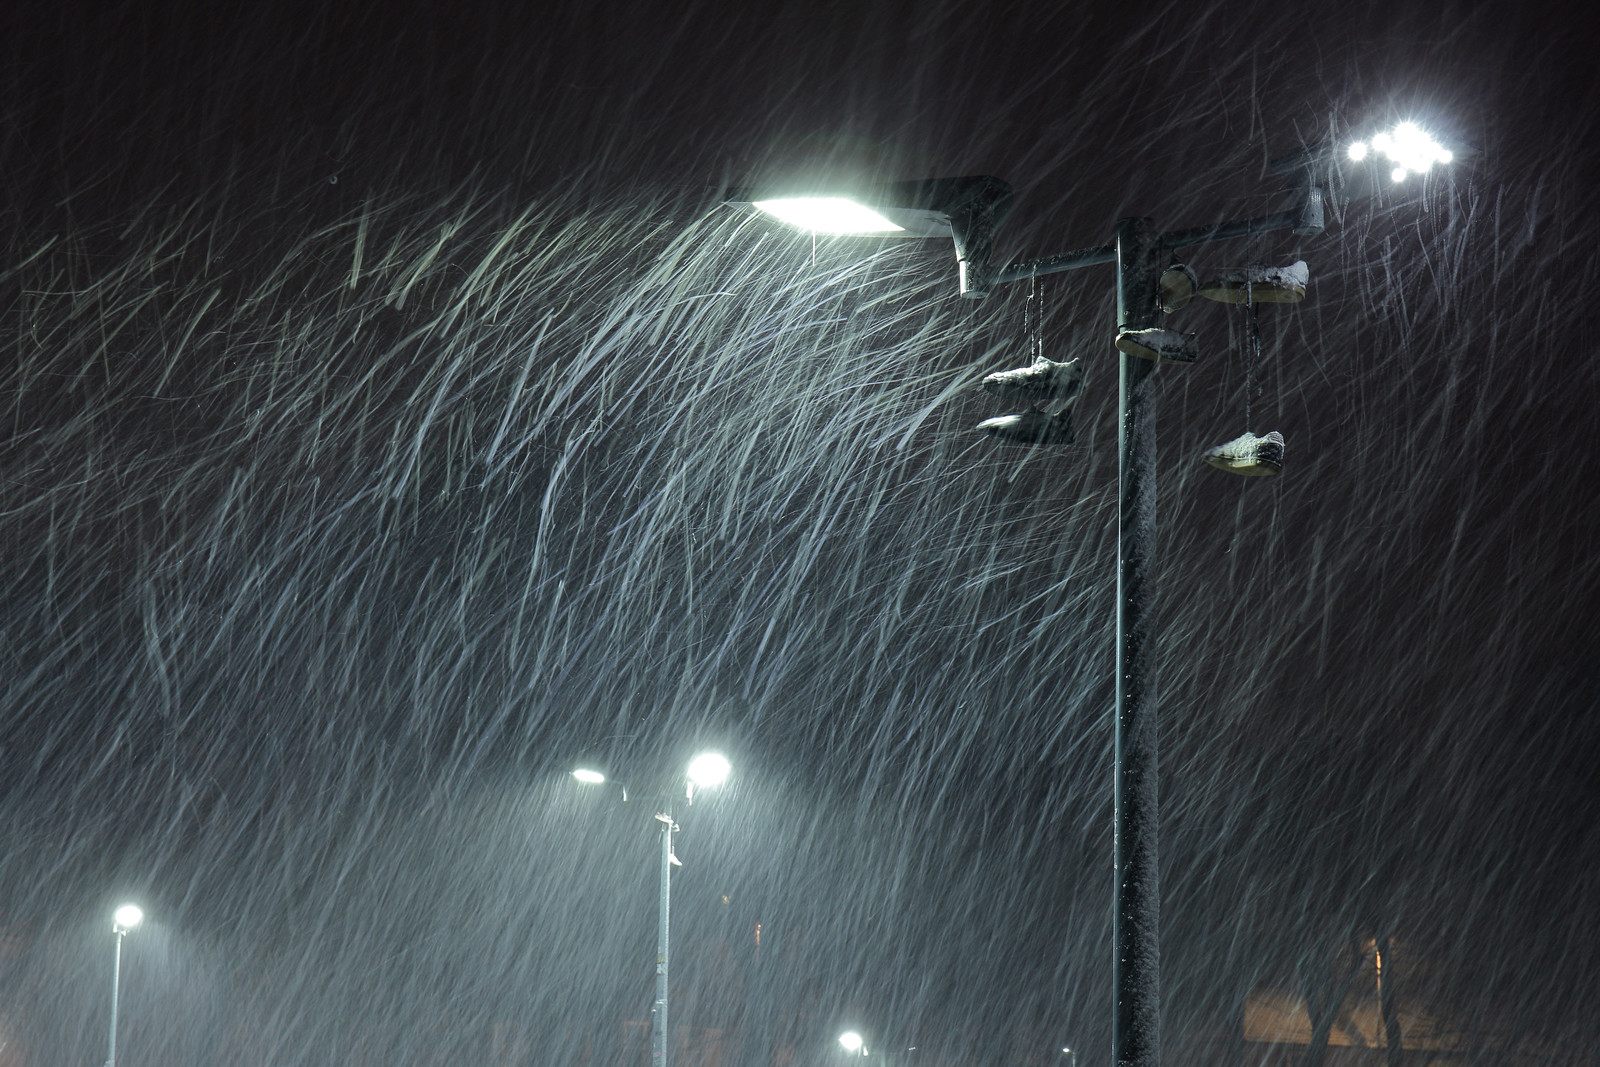 Blizzard caught in floodlights